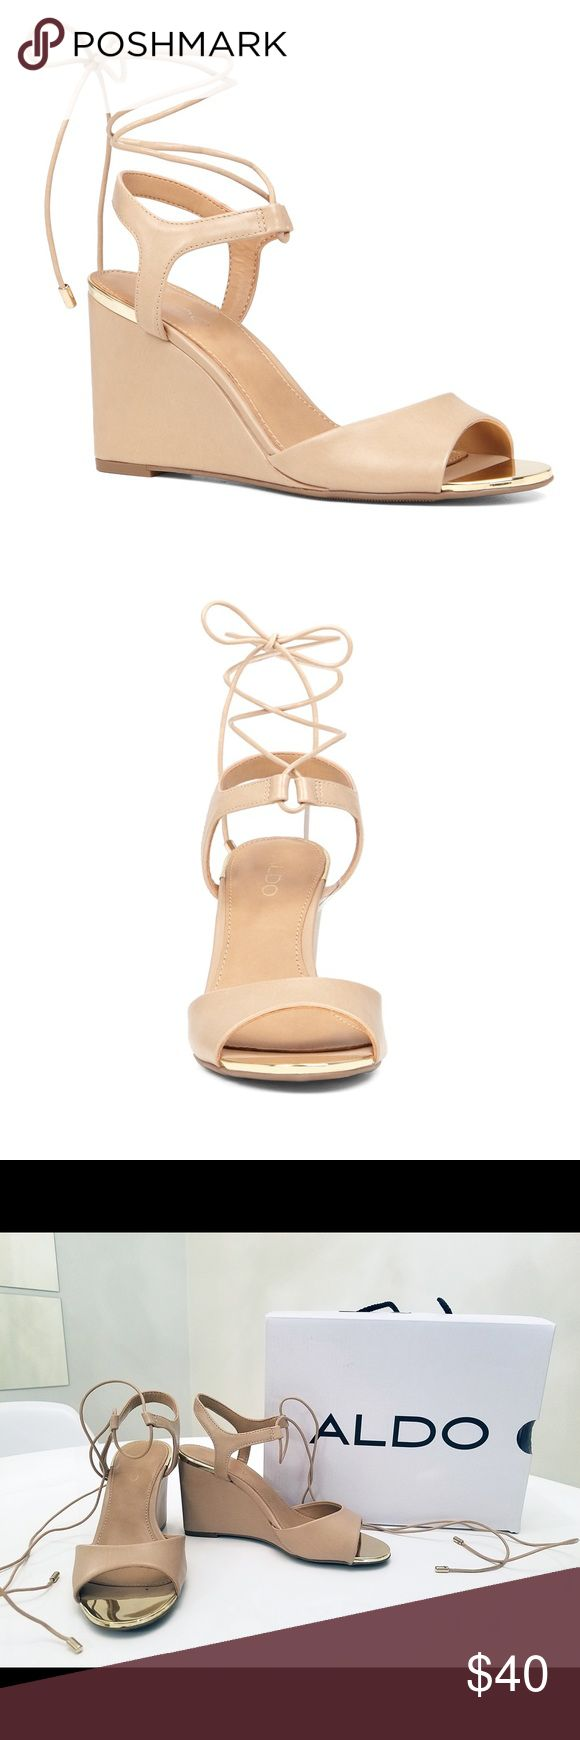 Aldo Beige Wedge Sandals with straps (Frizzell) A stylish cream/beige wedge sandals with straps that tie at the ankle or leg. Metallic finishes add glamour.  Heel height: 3.25 inches.  Worn only once for a wedding and in great condition! Aldo Shoes Wedges